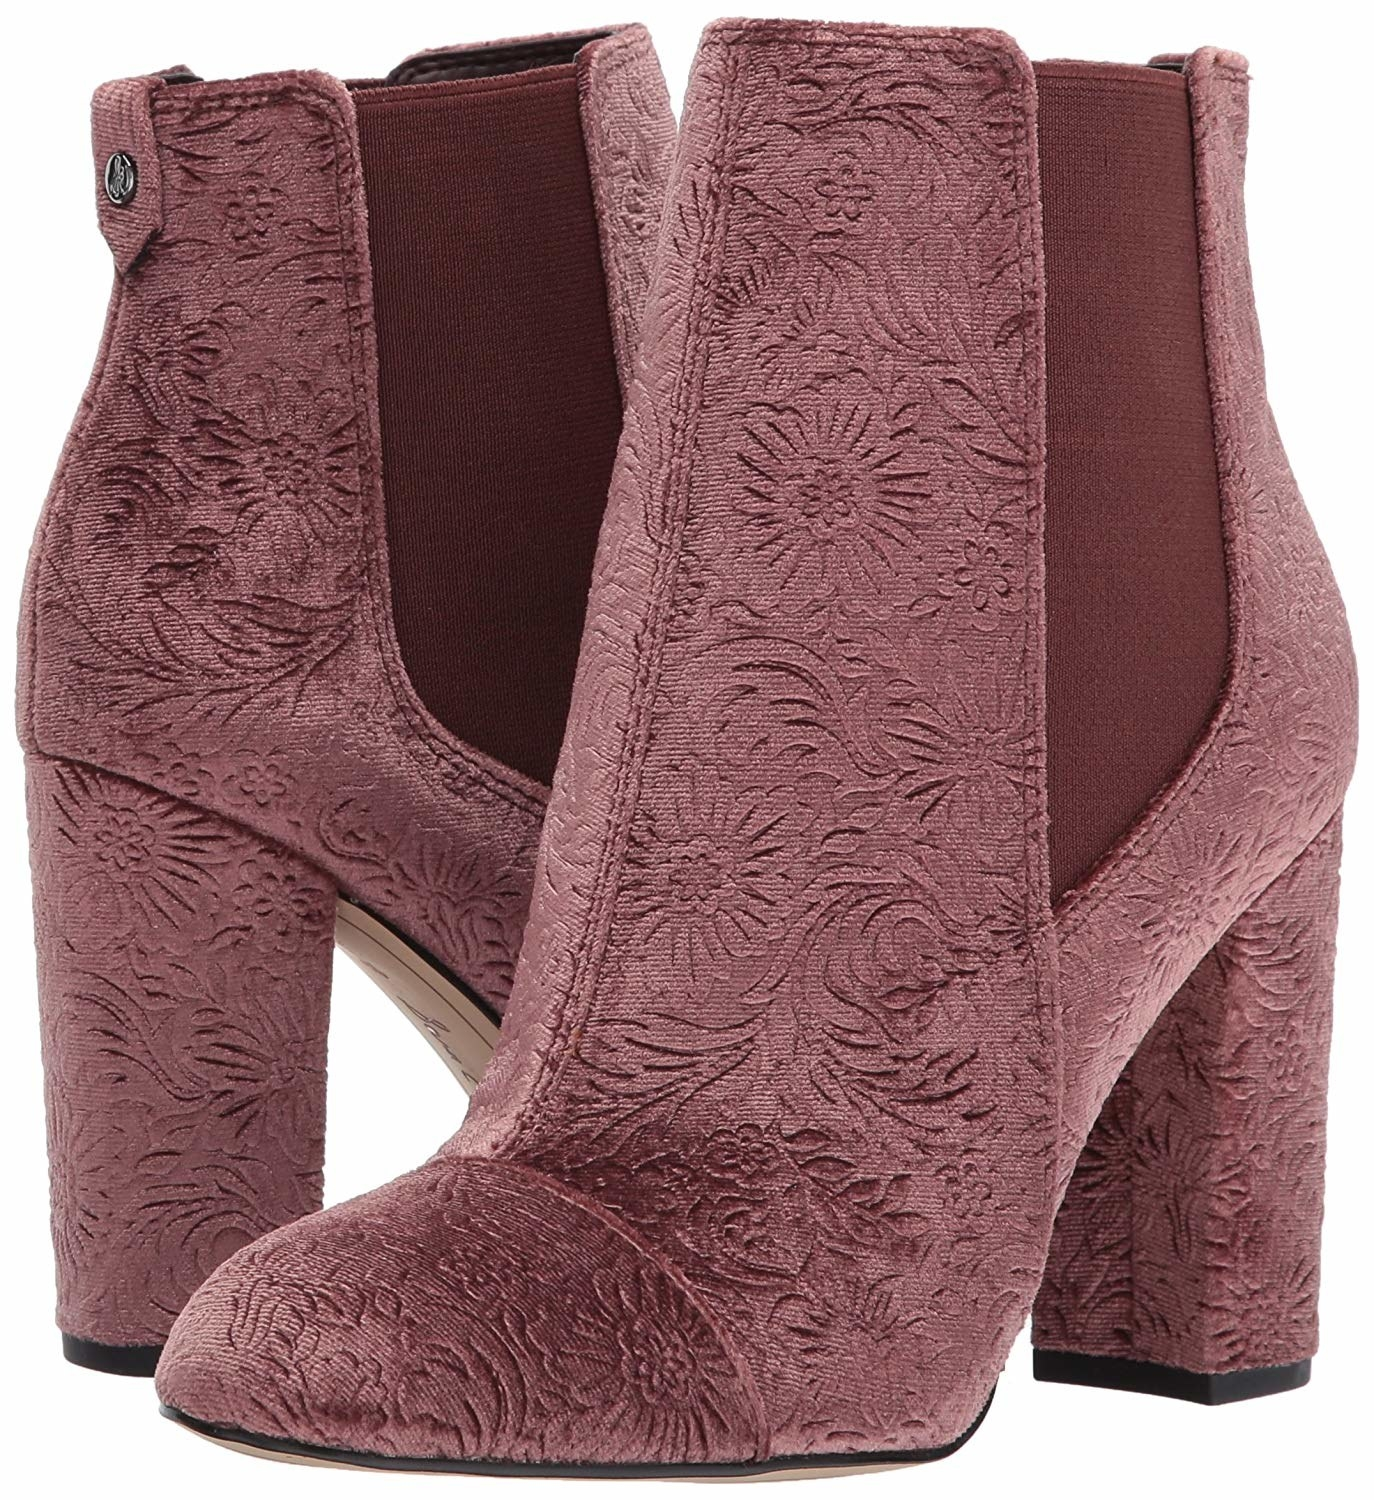 High-heel boots with elastic on either side and mauve velvet fabric with embossed flower details all over